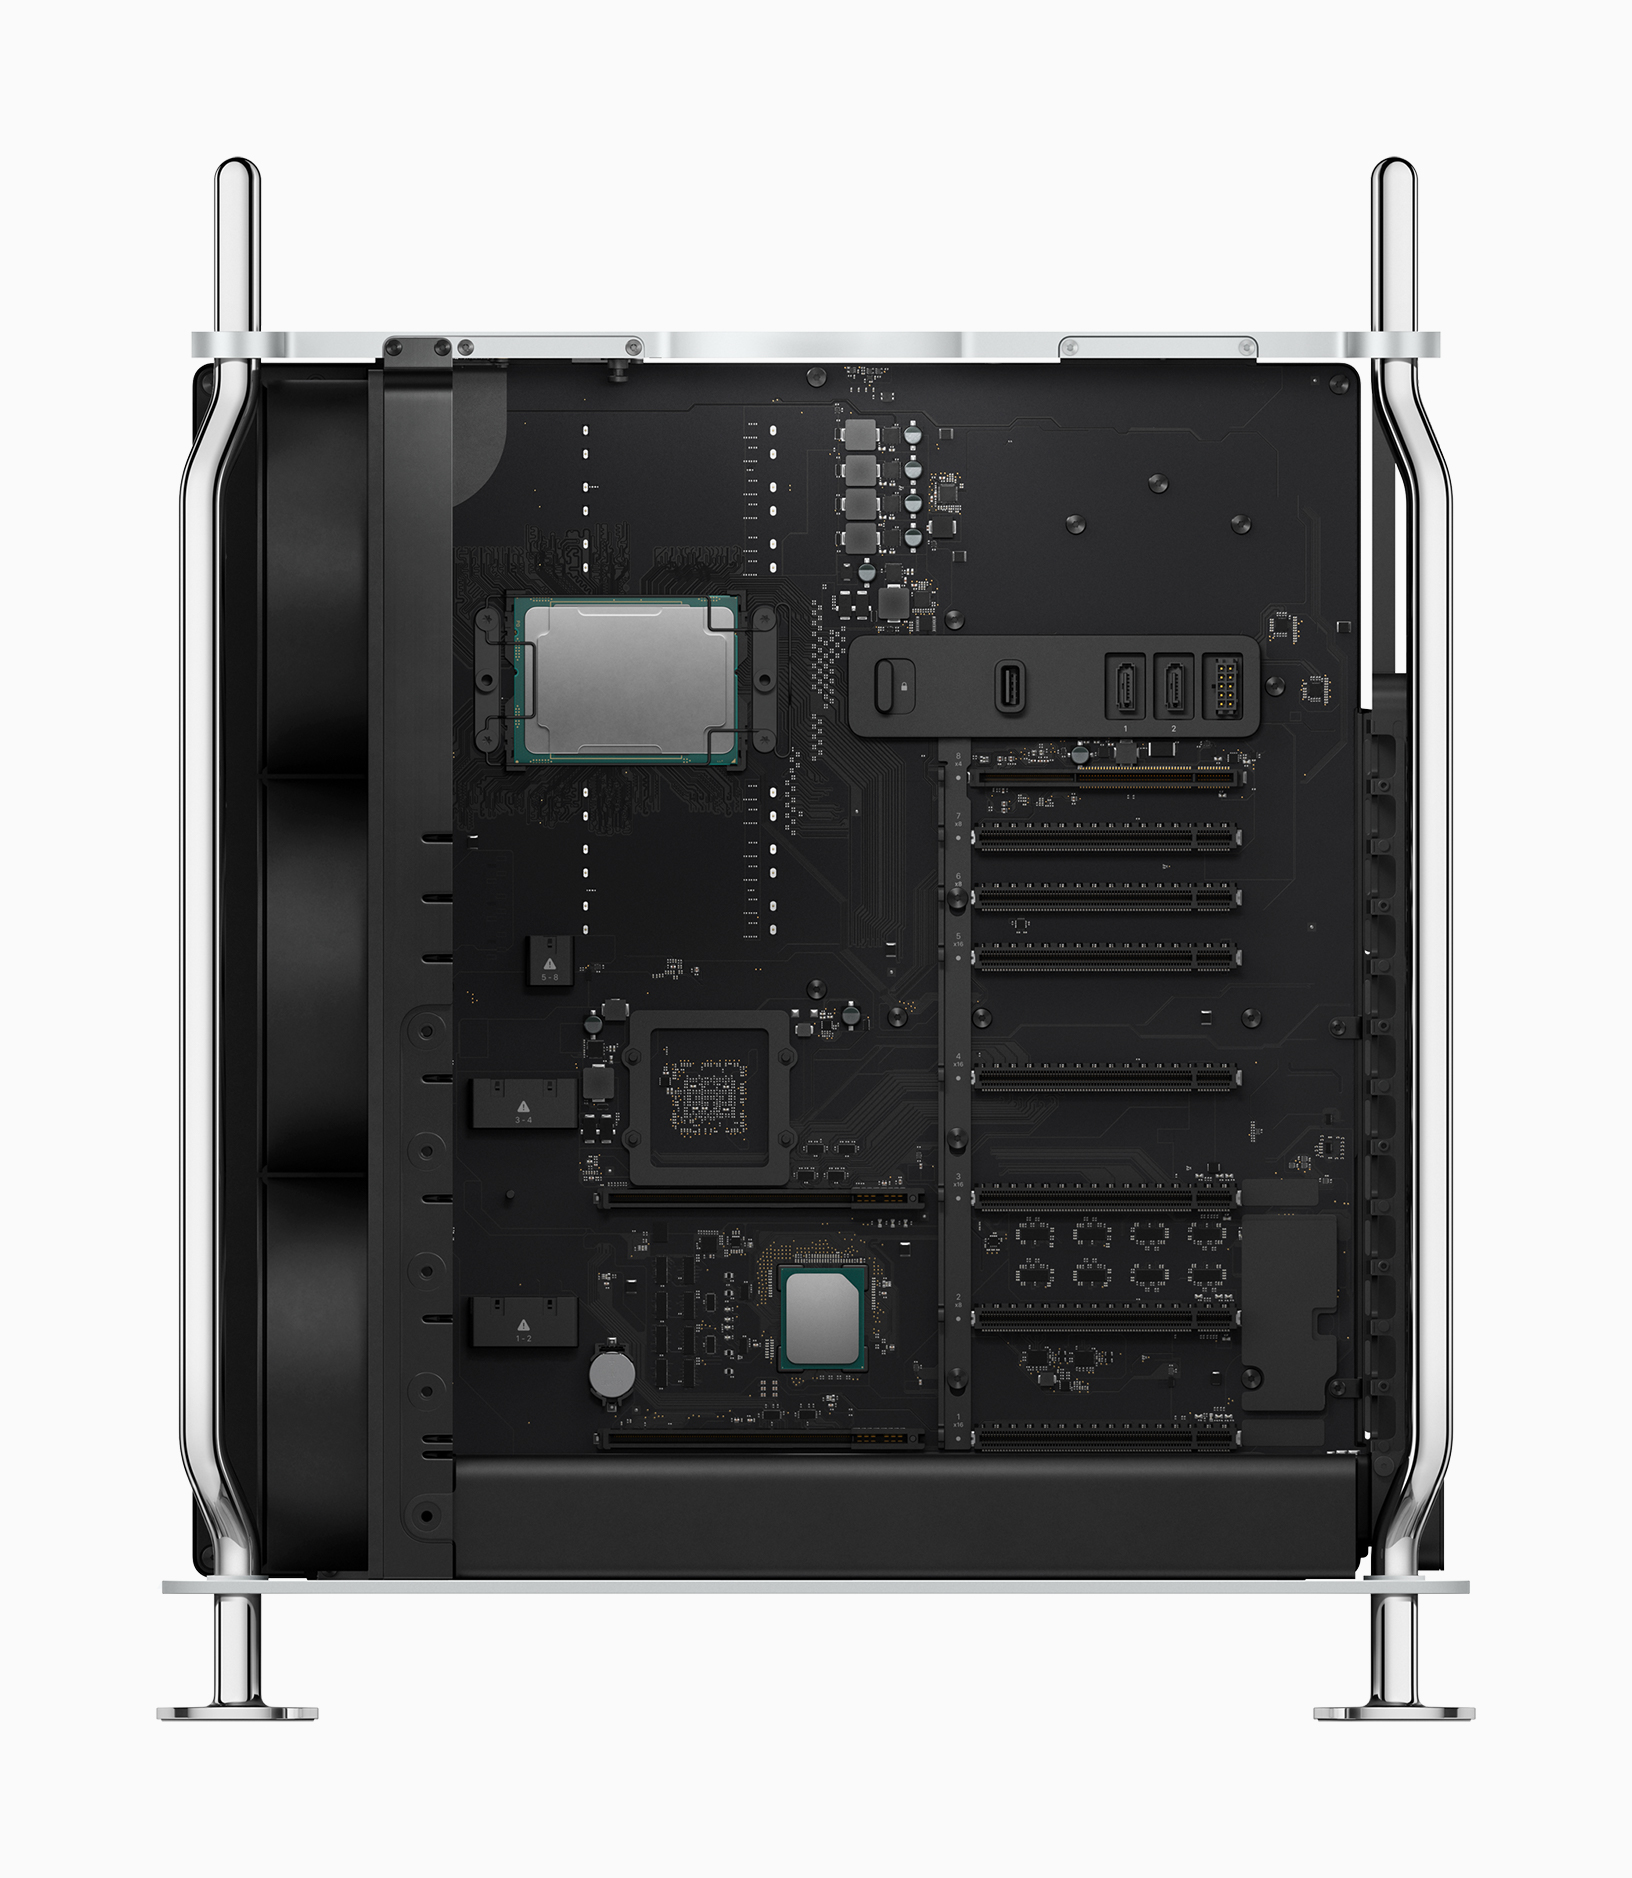 apple_mac-pro-display-pro_mac-pro-internal_060319_.jpg